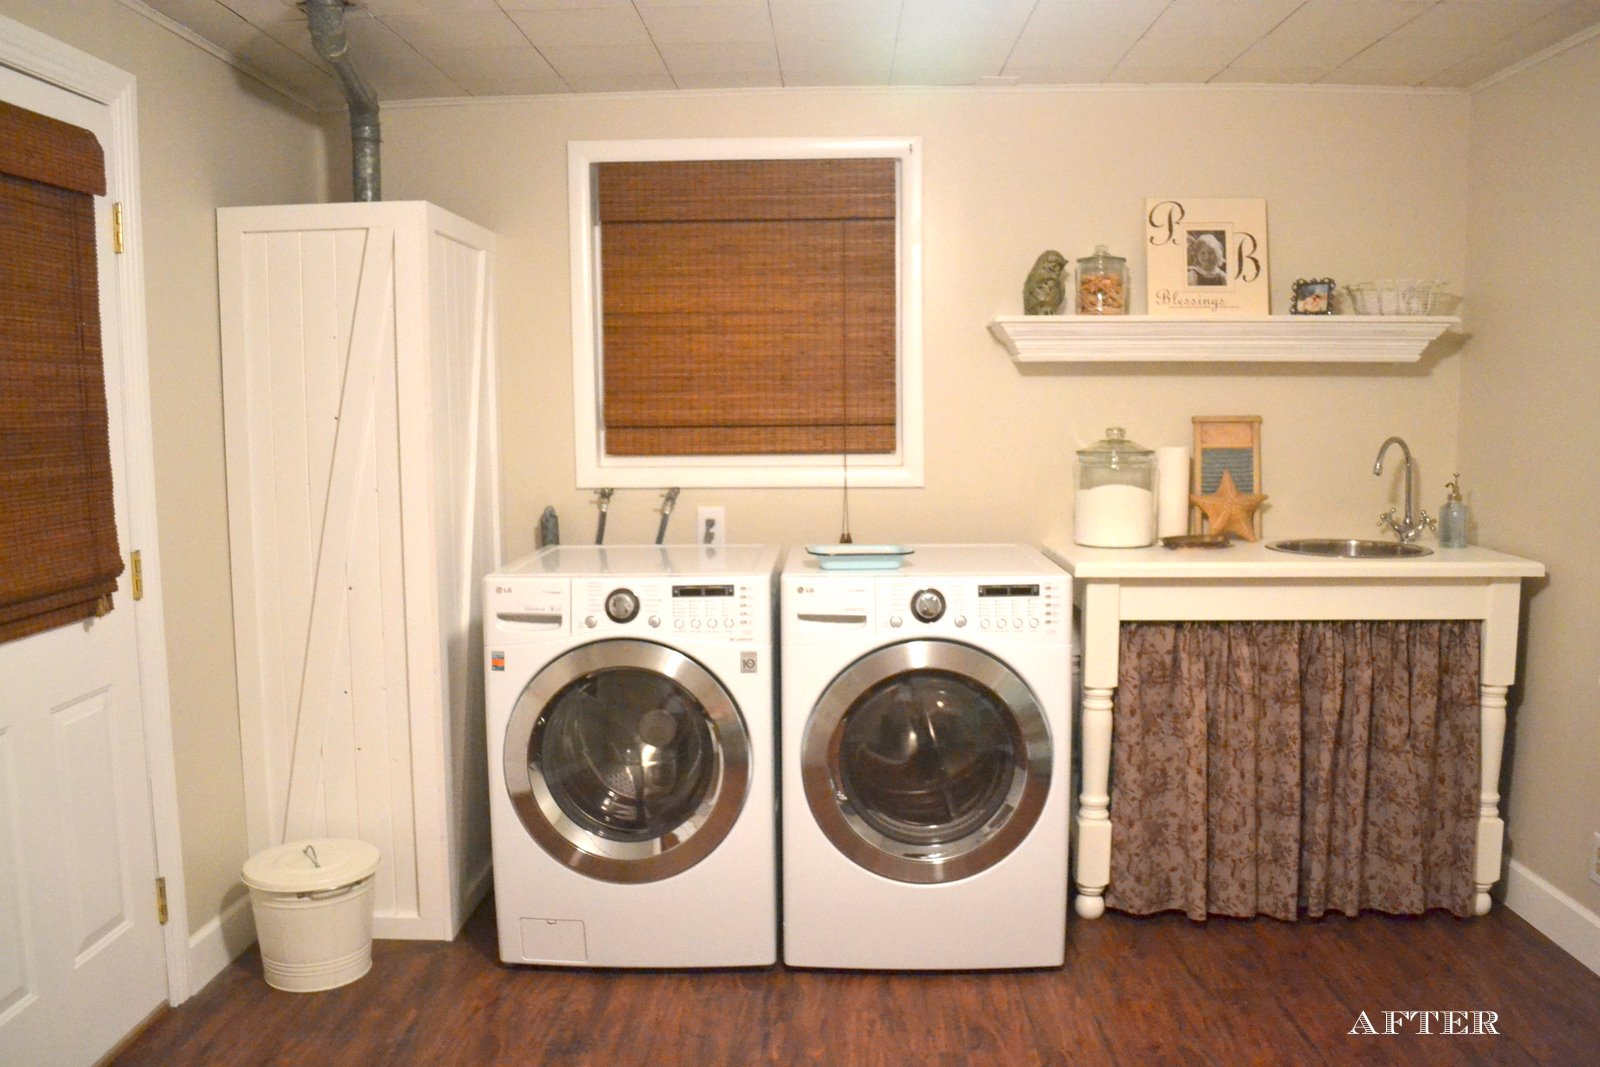 our laundry room is finally complete at least the laundry side of